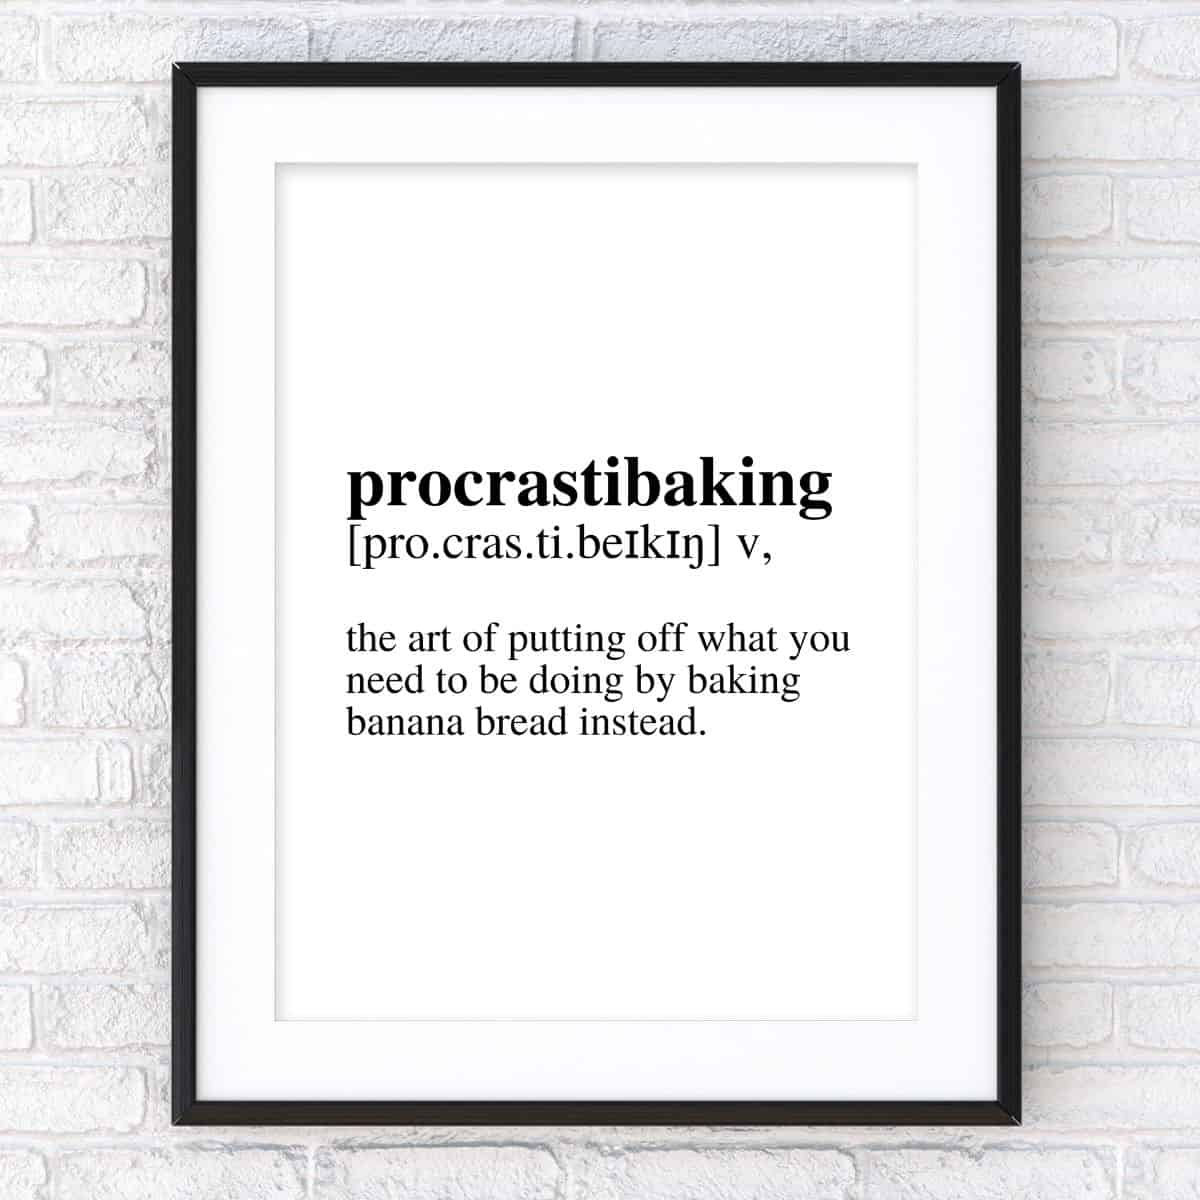 Black frame on the brick wall with the text: Procrastibaking verb definition